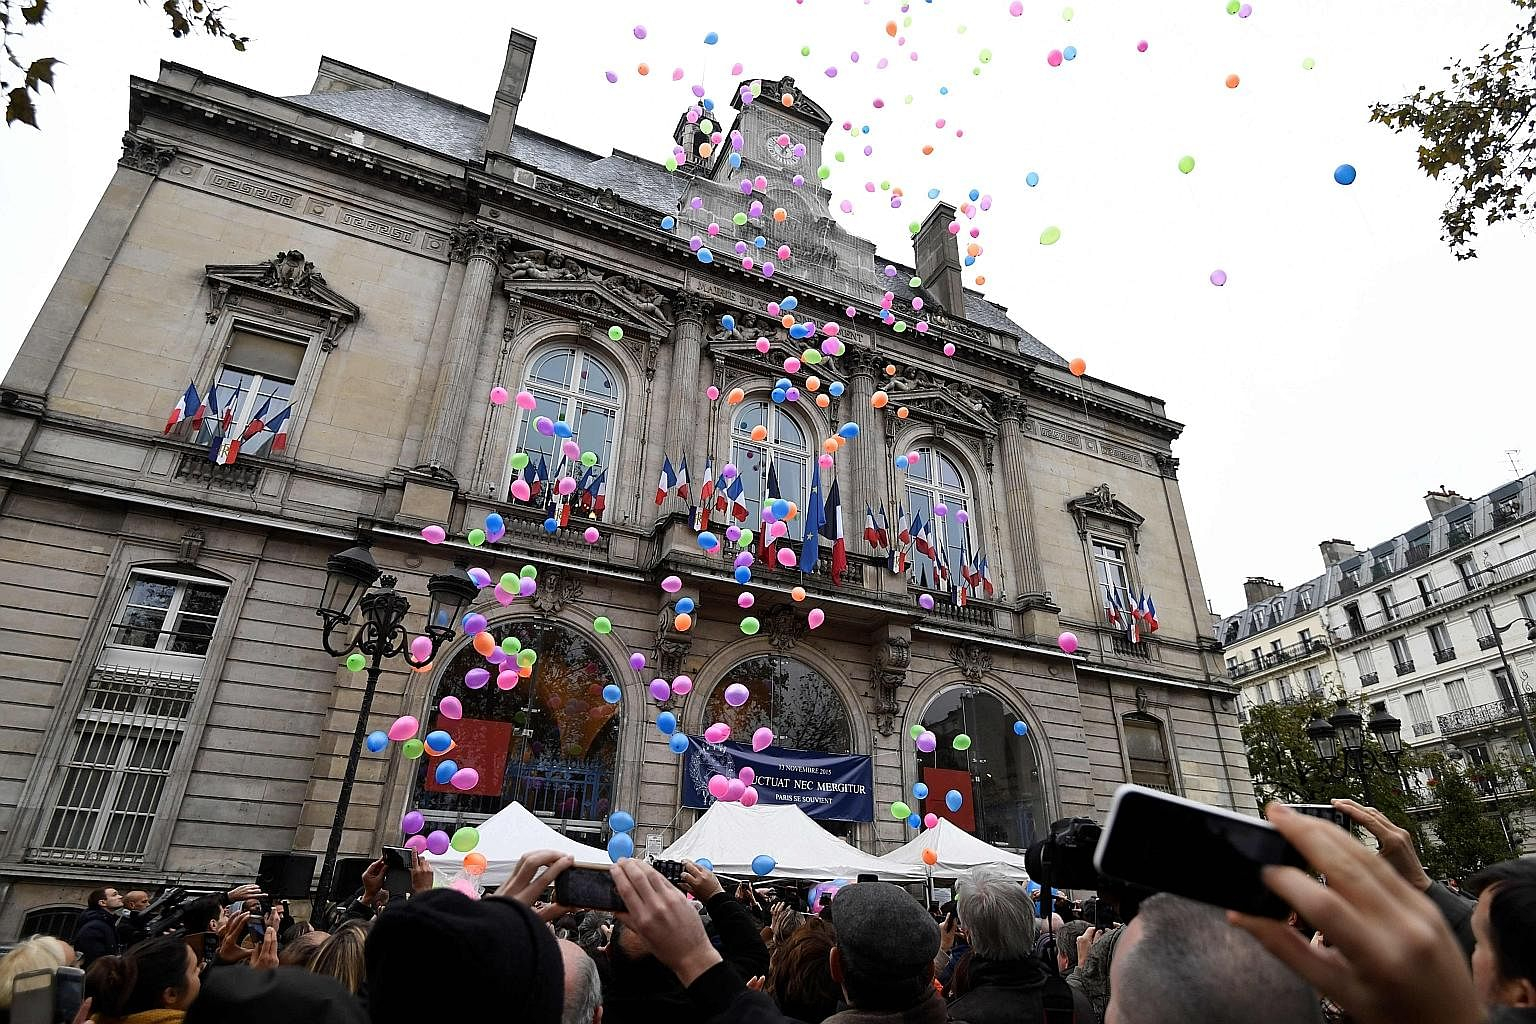 To mark the first anniversary of the Nov 13 terrorist attacks in Paris, people released balloons (above) in front of the city hall of Paris' 11th arrondissement yesterday while Sting (below) played a day earlier at the reopening of the Bataclan conce